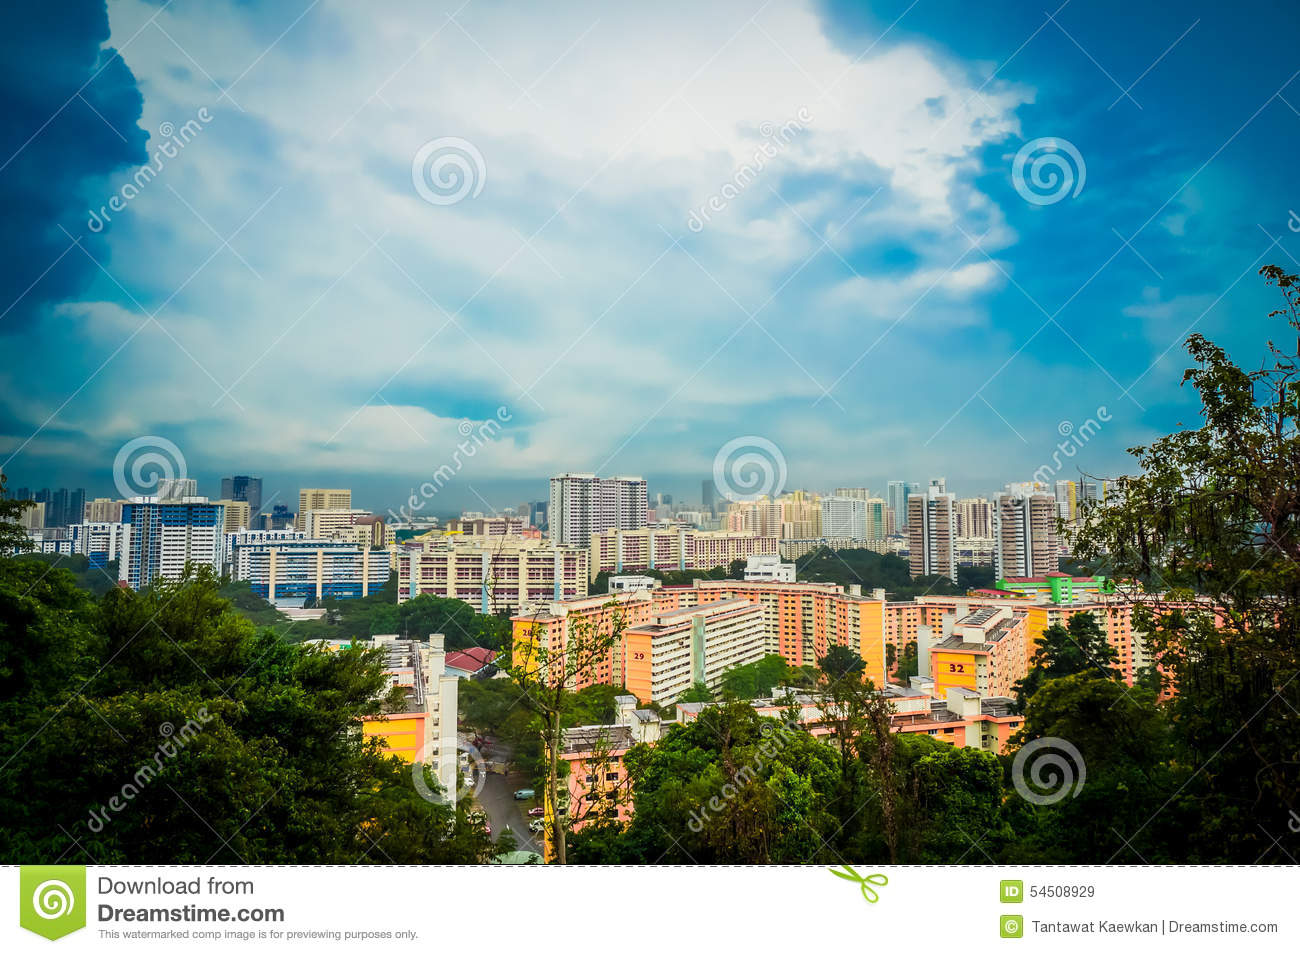 Singapore Residential Estate Scape Stock Image - Image of